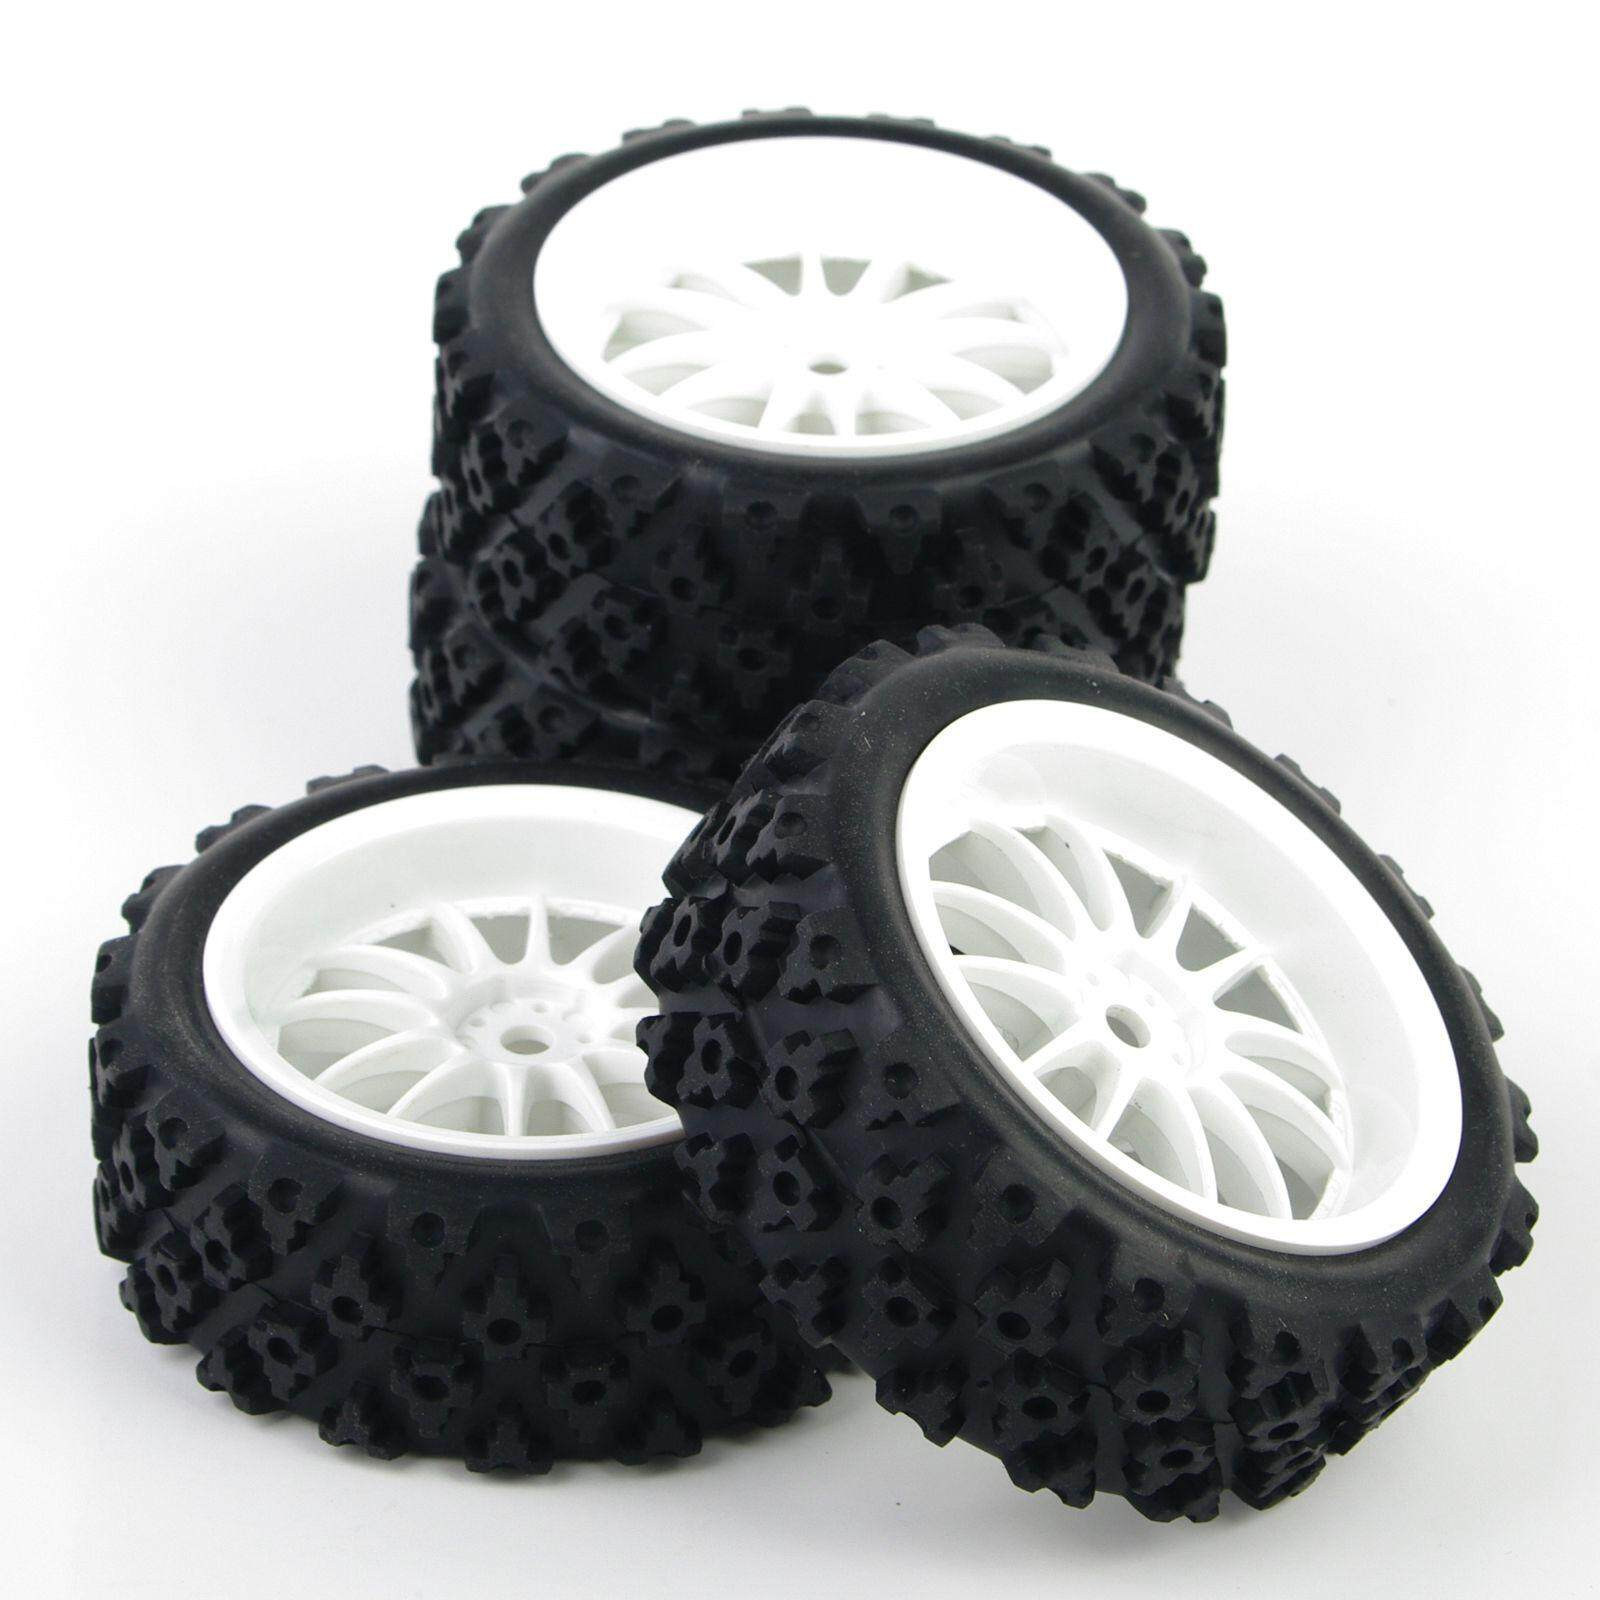 HSP HPI 1/10 RC Rally Racing Off Road Car Tyre and White Wheel 4PCS 069-487 - intl